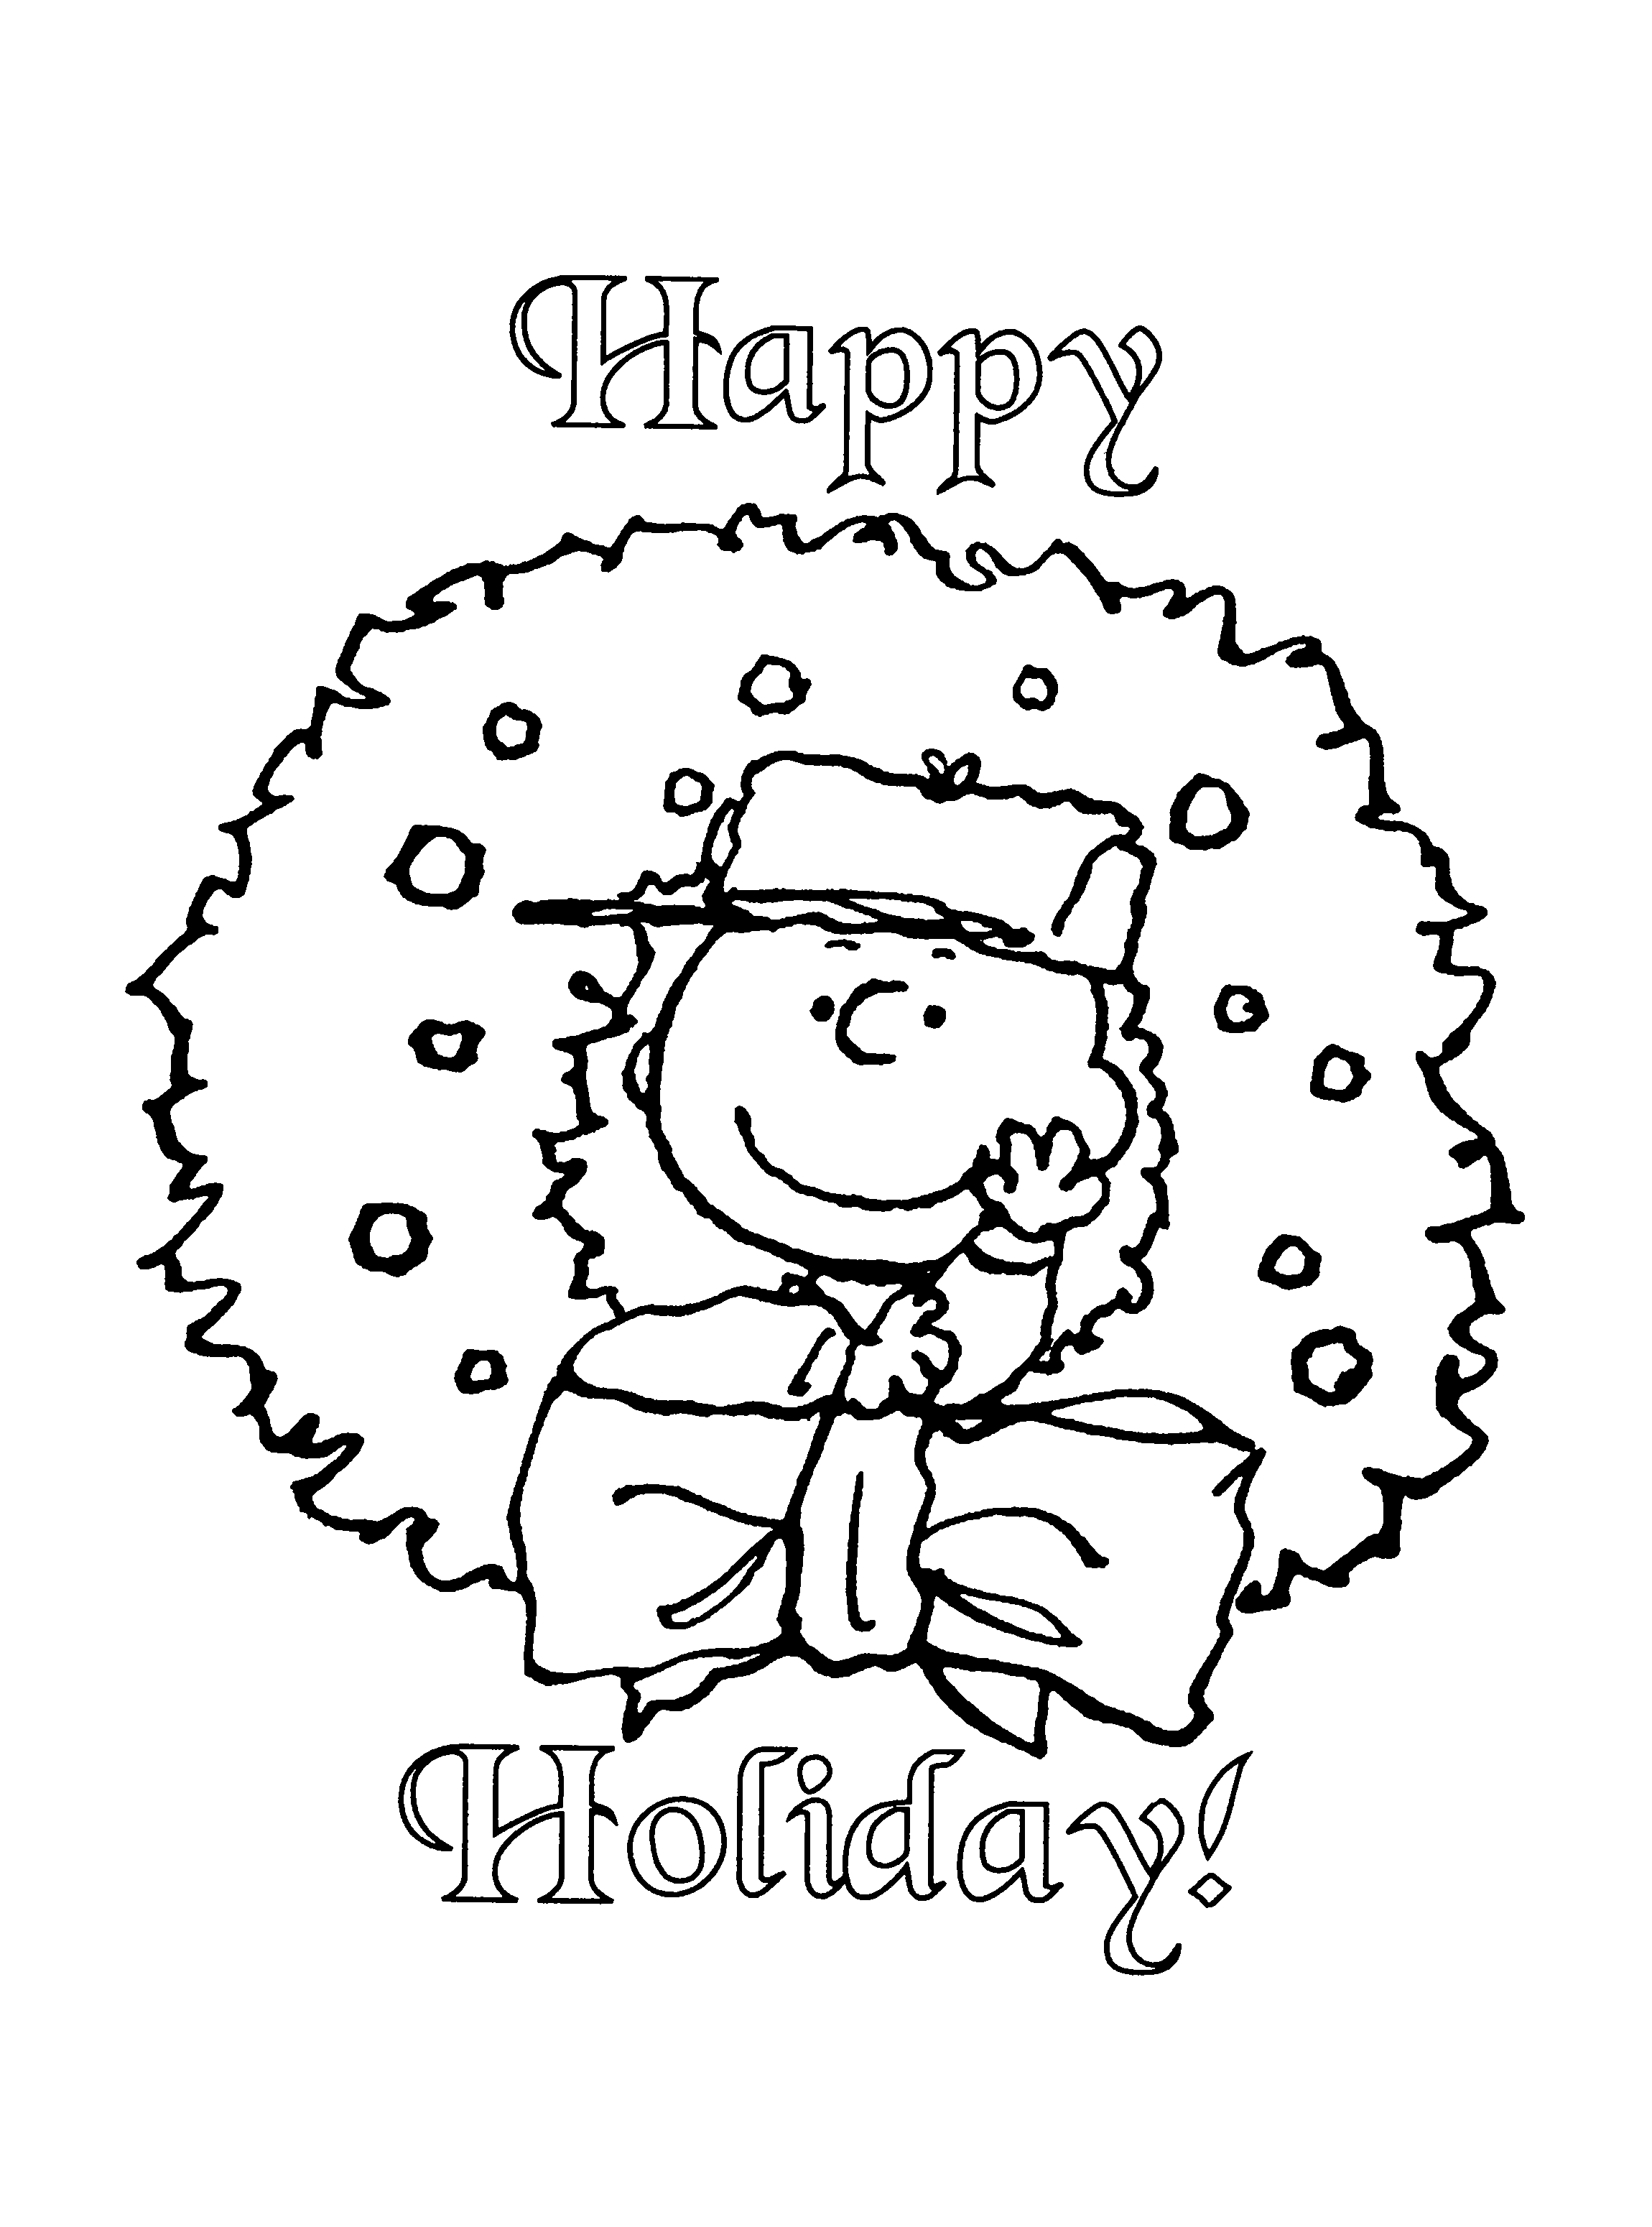 Did You Know That The Word Holiday Comes From Holy Days